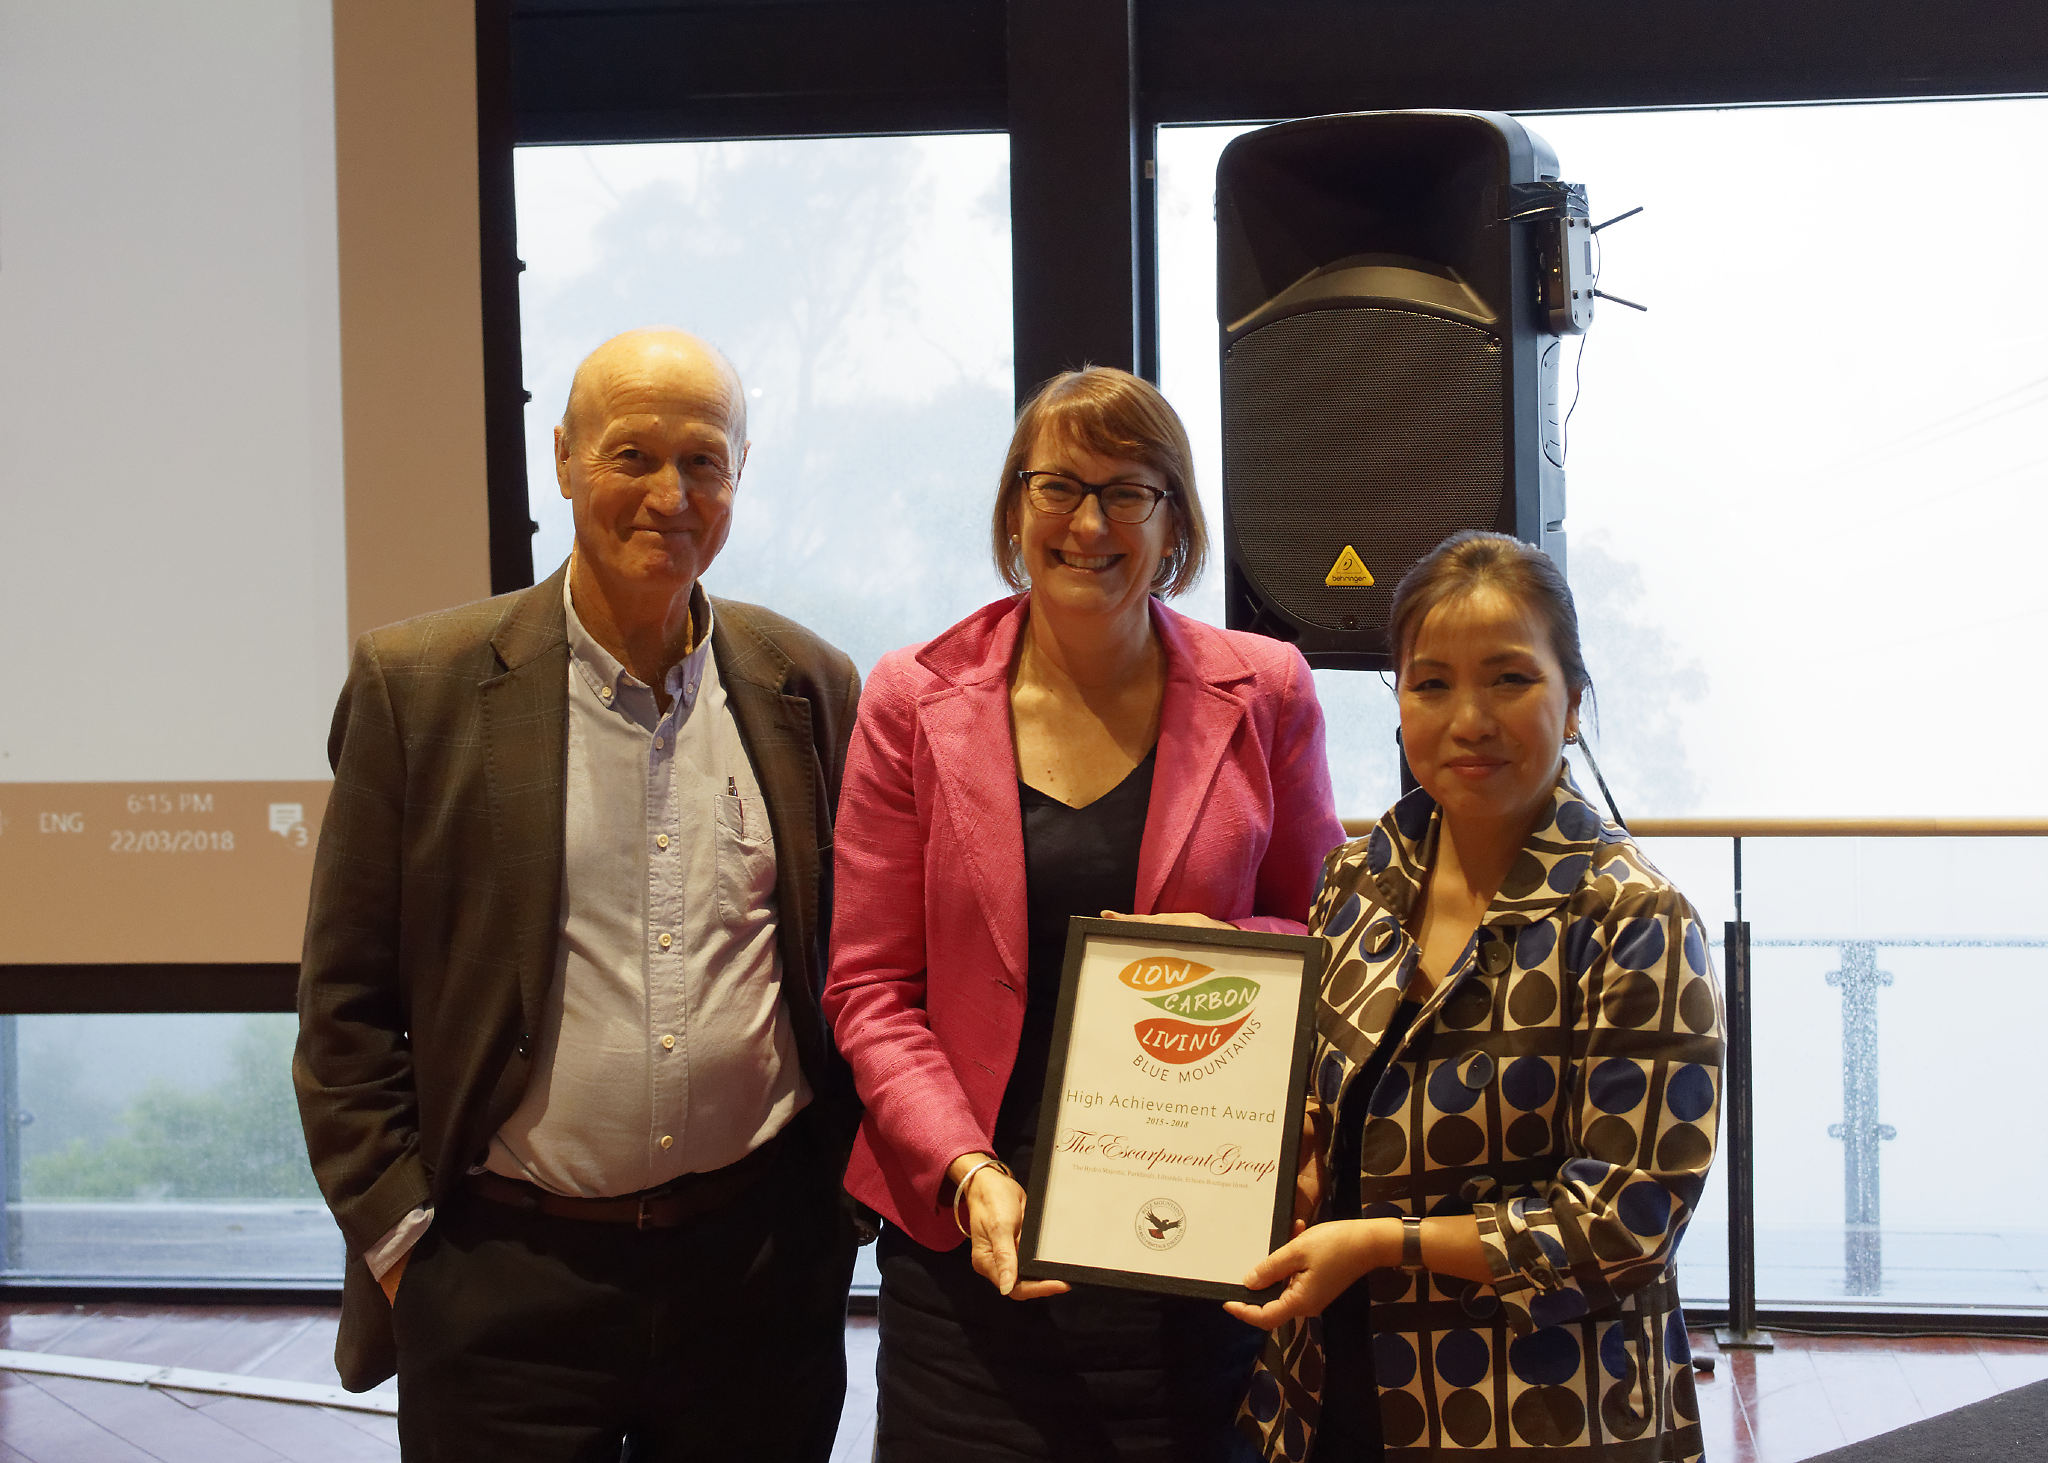 BMWHI executive director John Merson, with MP Susan Templeman, and the Escarpment Group director Huong Nguyen.